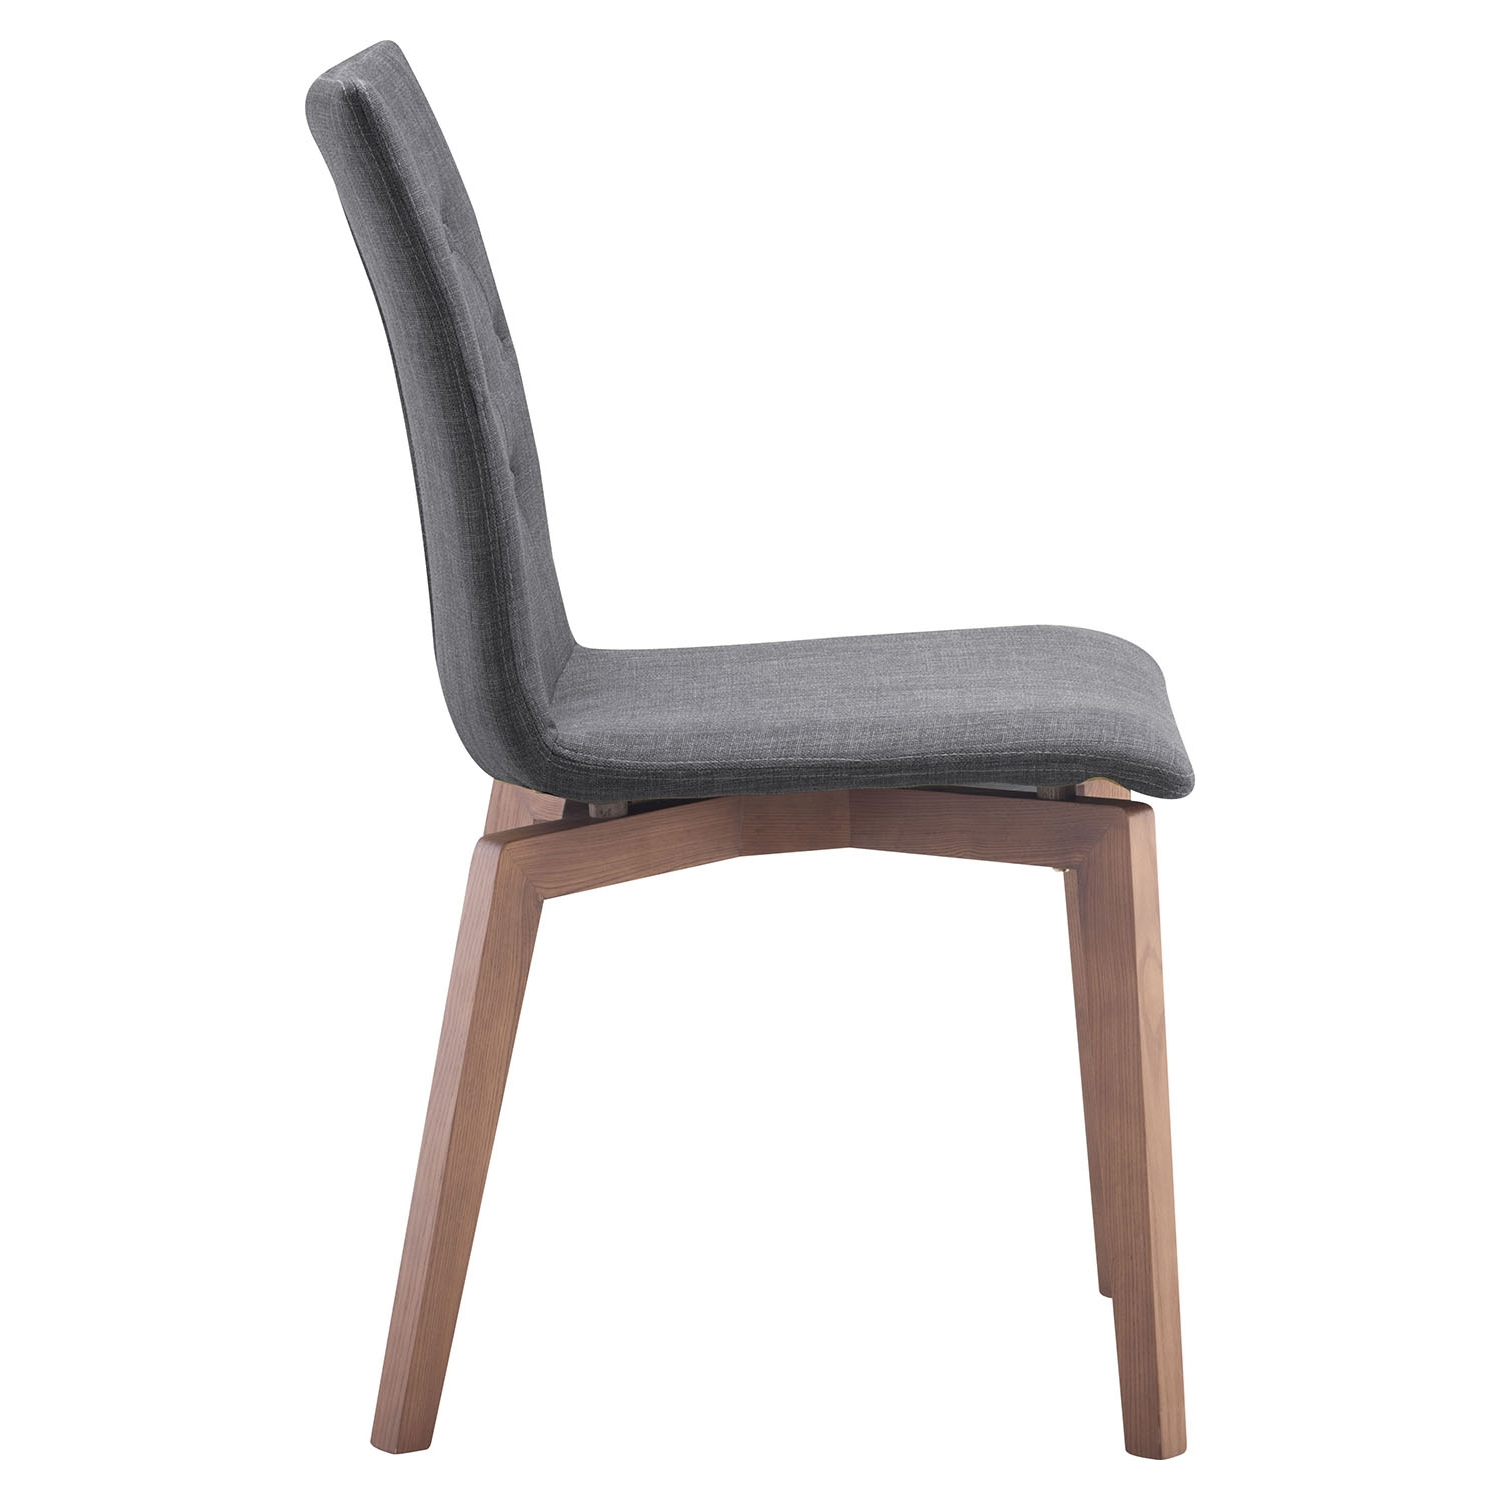 Orebro Dining Chair - Tufted, Graphite - ZM-100071